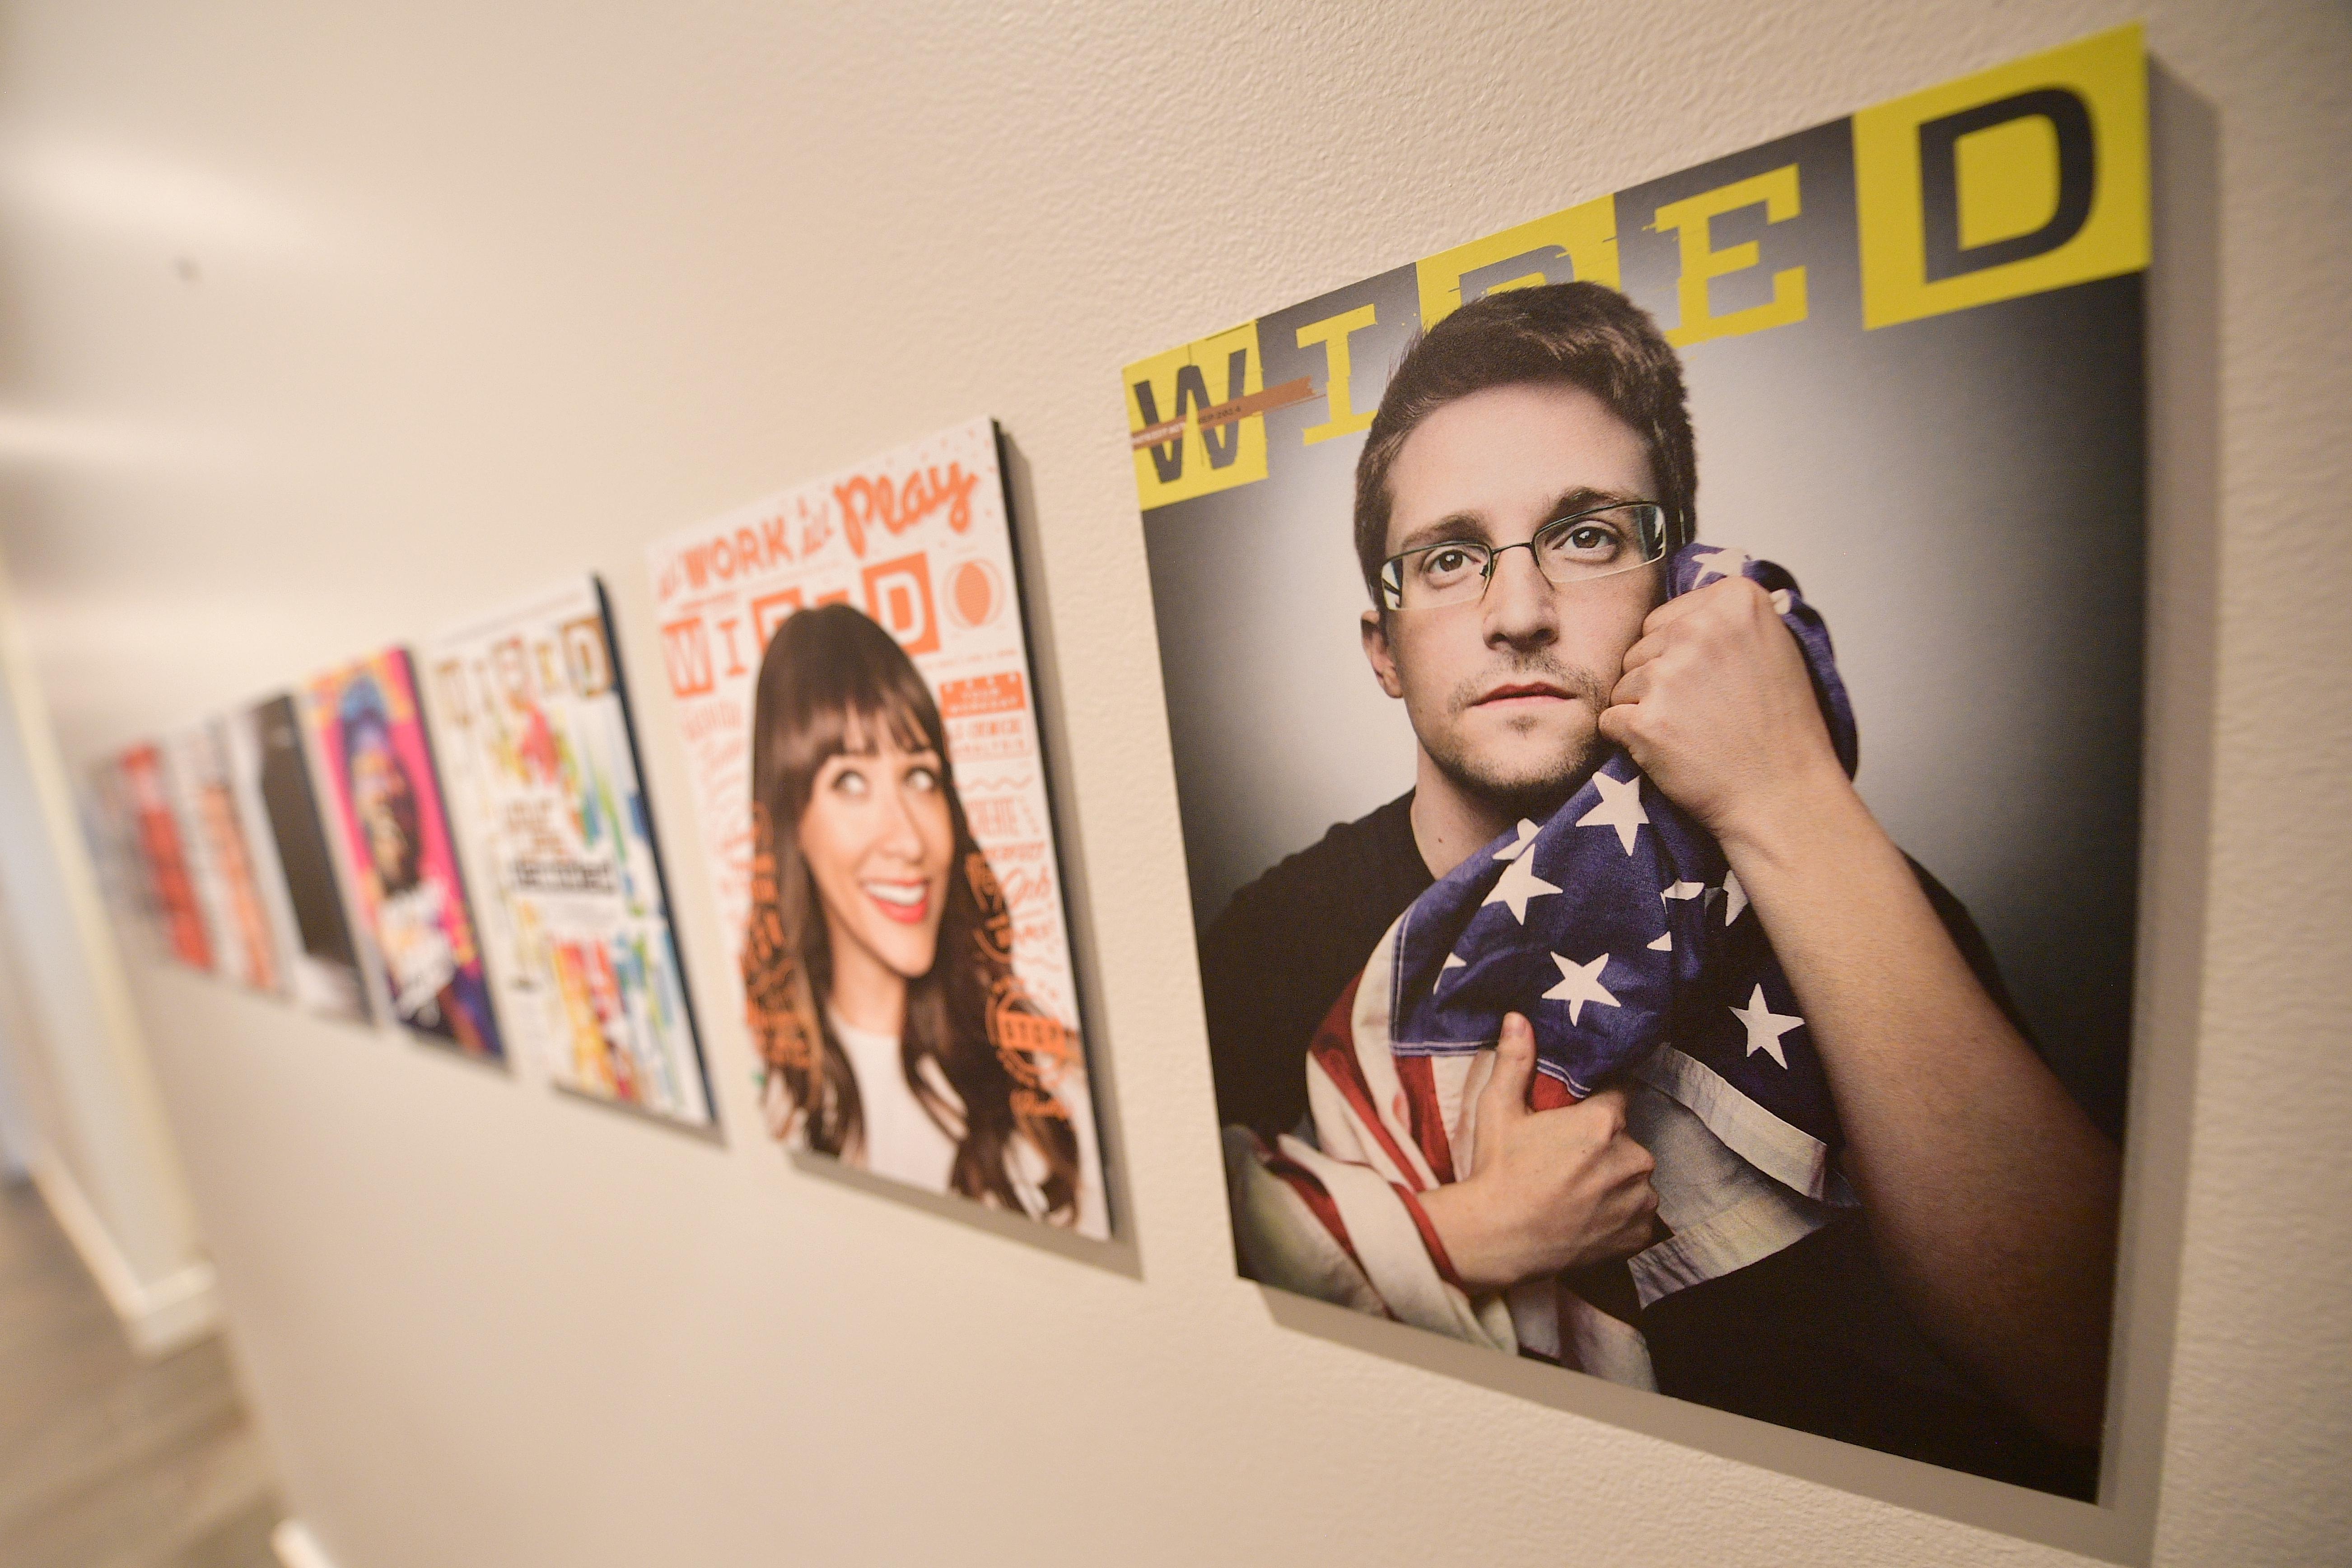 SAN FRANCISCO, CA - OCTOBER 12:  WIRED Magazines on display at WIRED25 Work: Inside San Francisco's Most Innovative Workplaces on October 12, 2018 in San Francisco, California.  (Photo by Matt Winkelmeyer/Getty Images for WIRED25  )